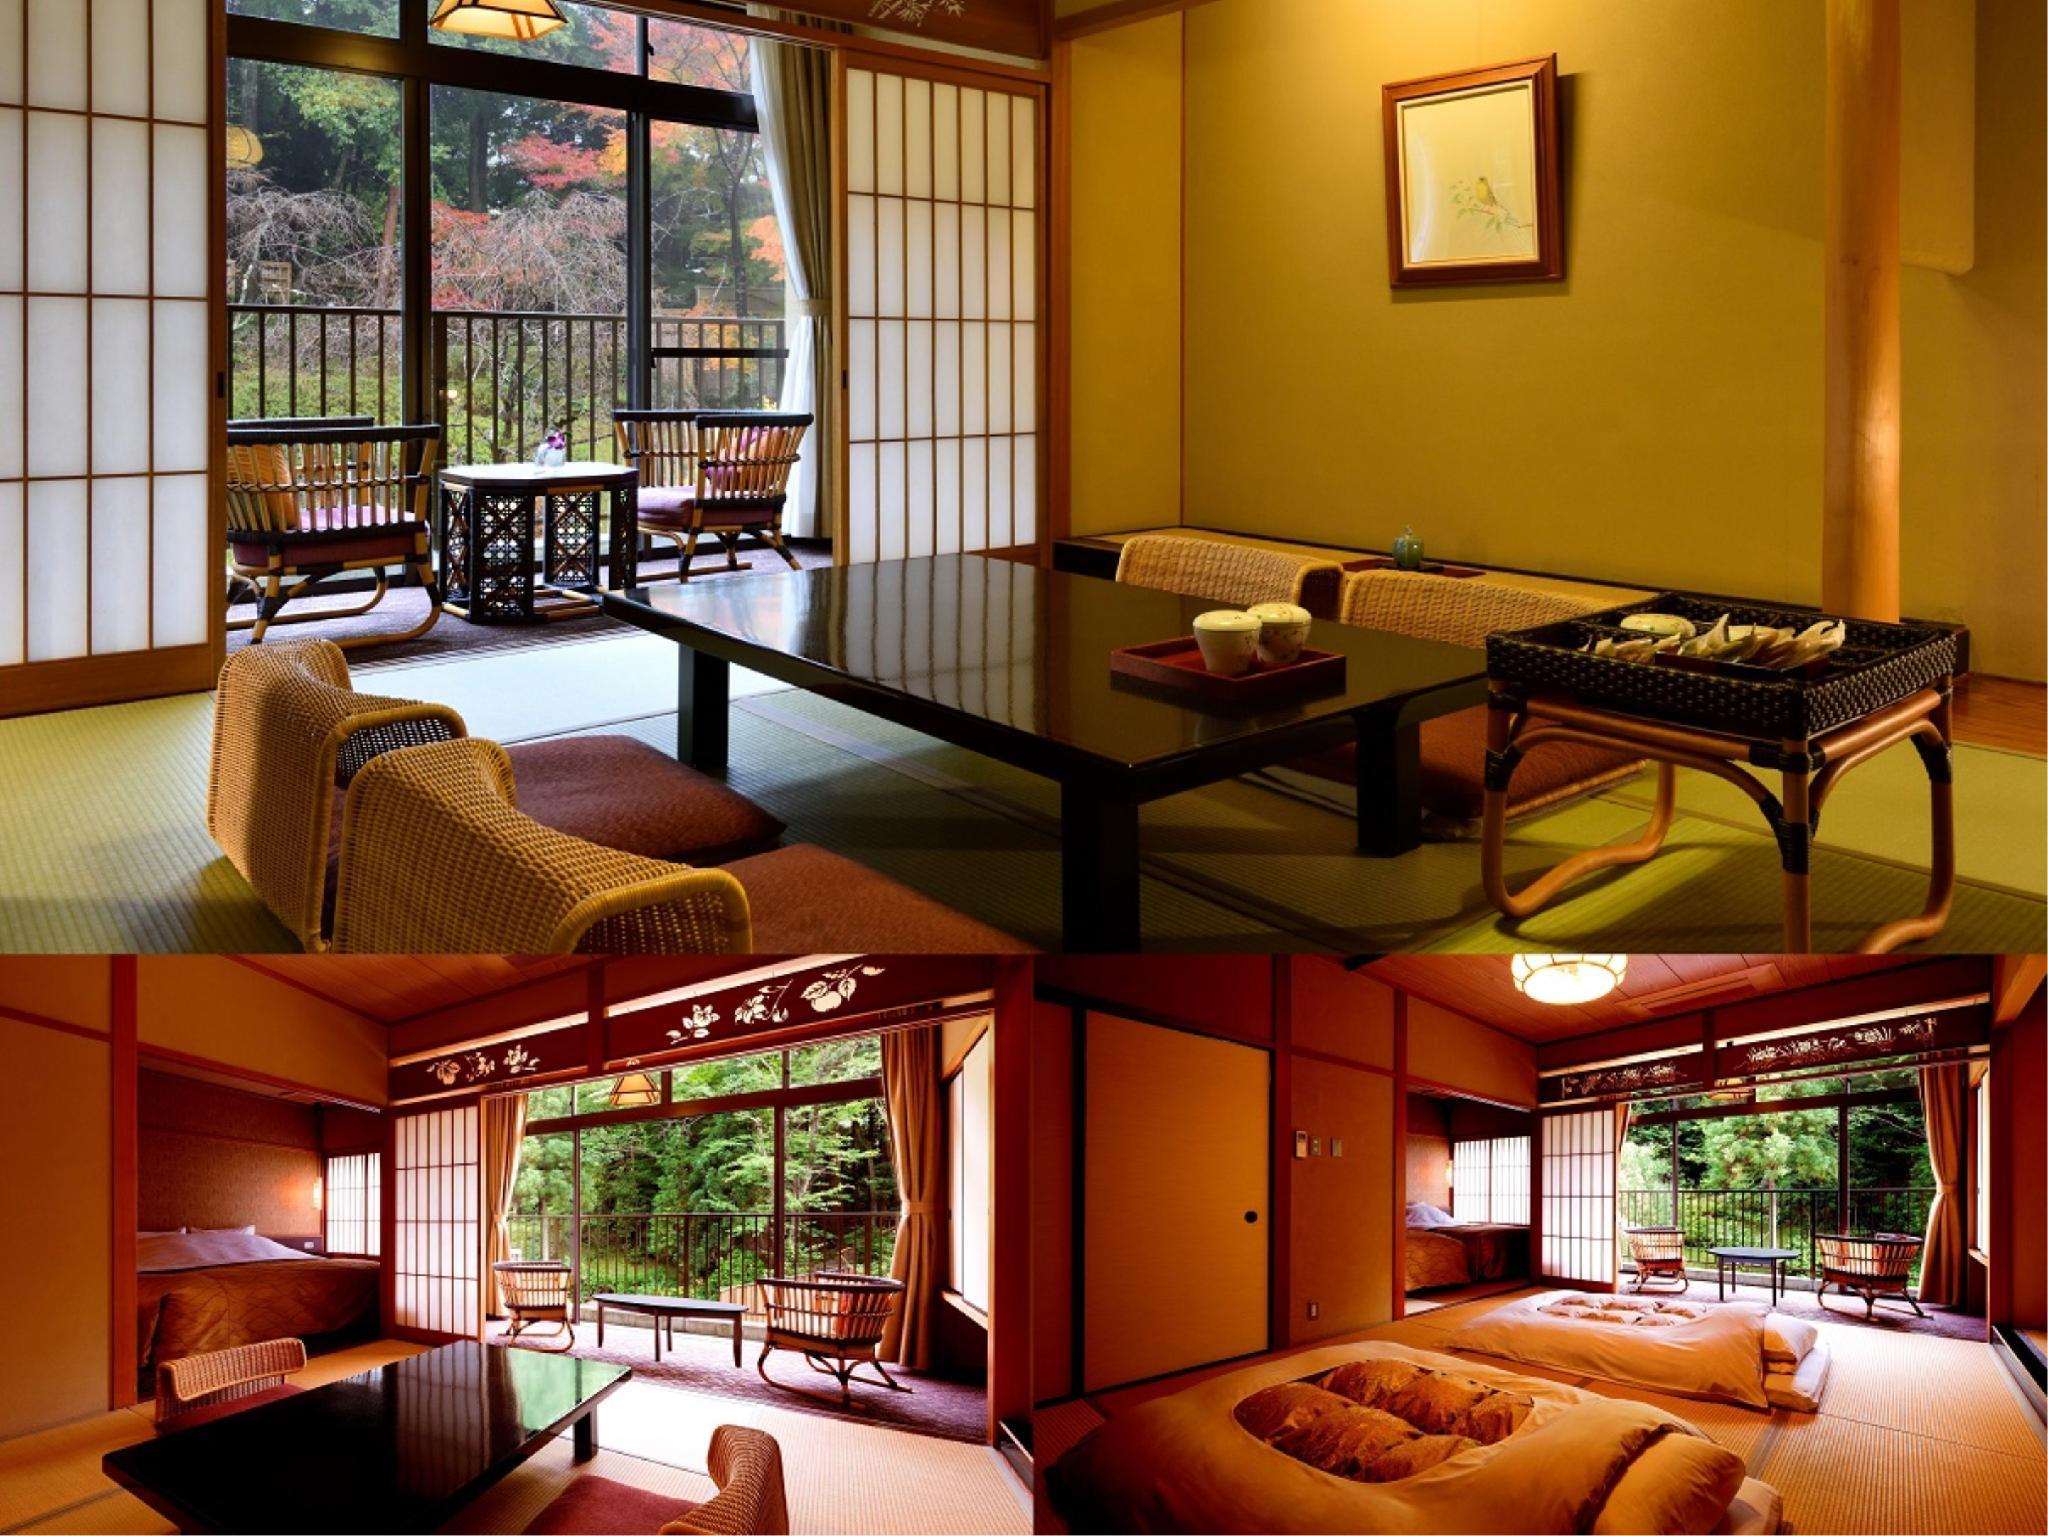 和洋式房(2张床) (Japanese Western Style Room with Twin Bed)